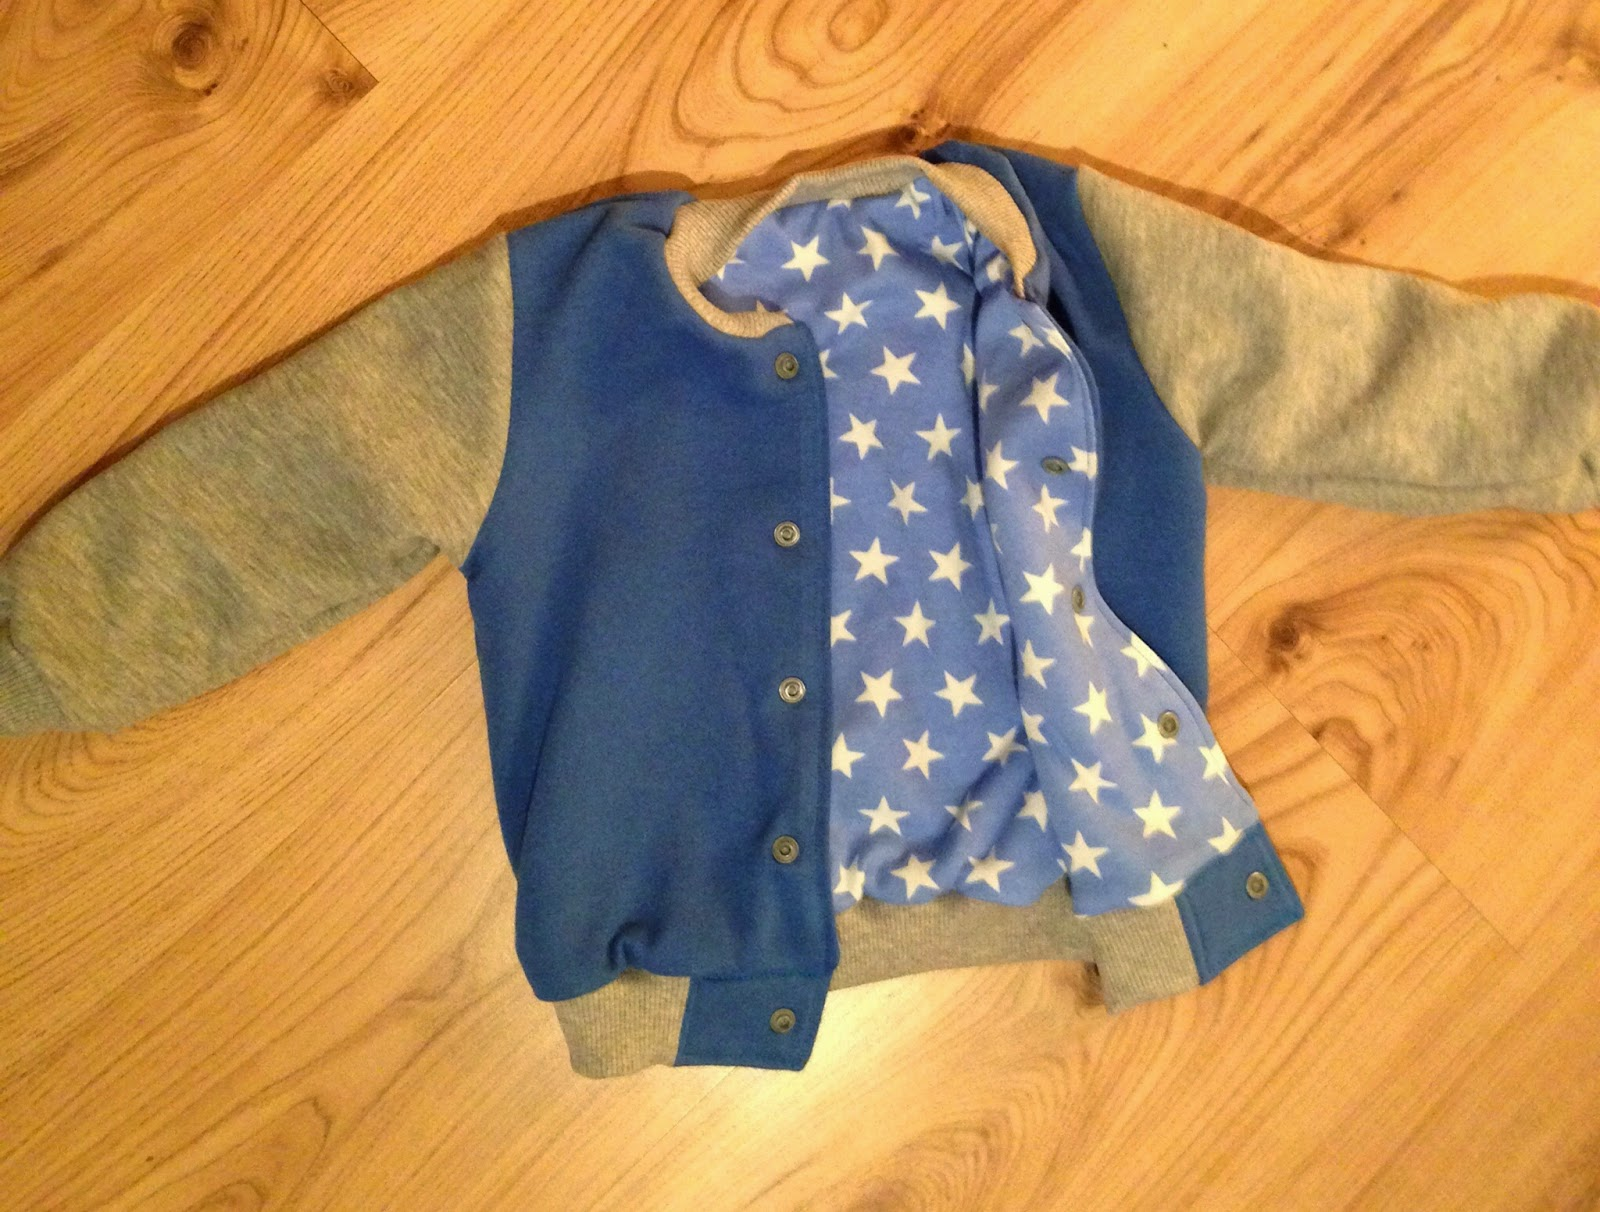 College jacke madchen schnittmuster